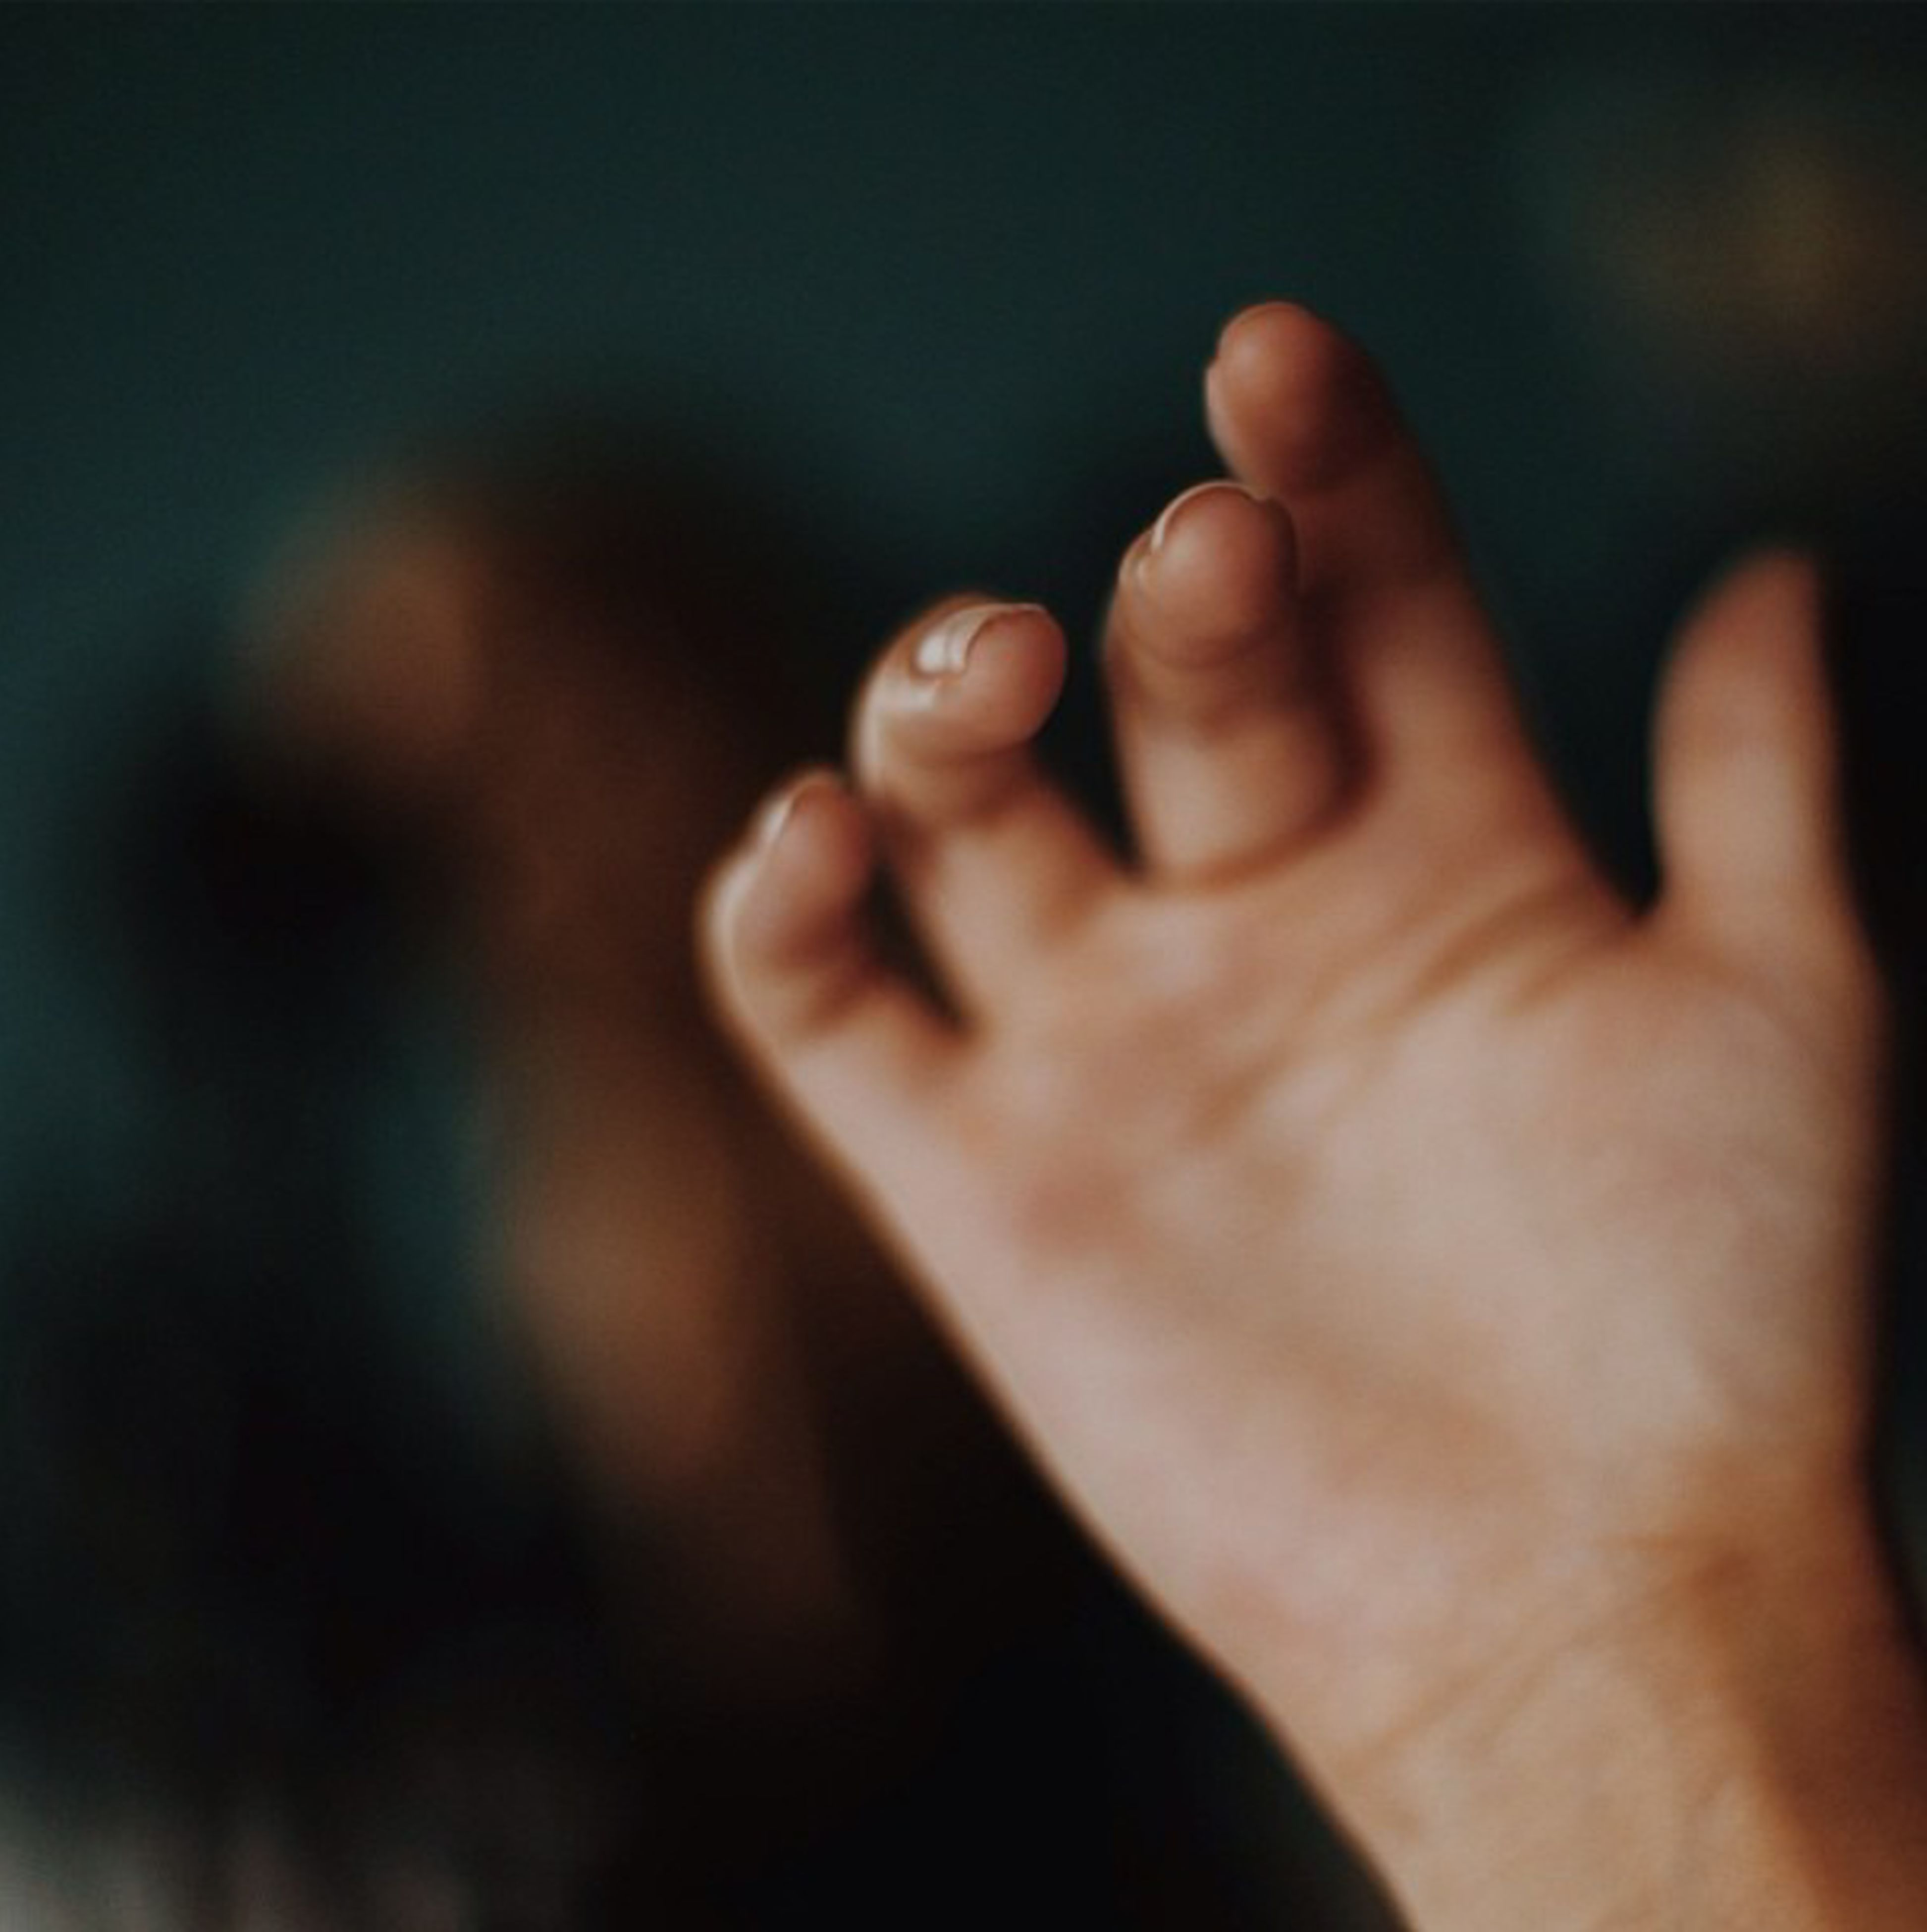 person, part of, lifestyles, human finger, close-up, selective focus, focus on foreground, cropped, leisure activity, unrecognizable person, holding, indoors, barefoot, human skin, men, love